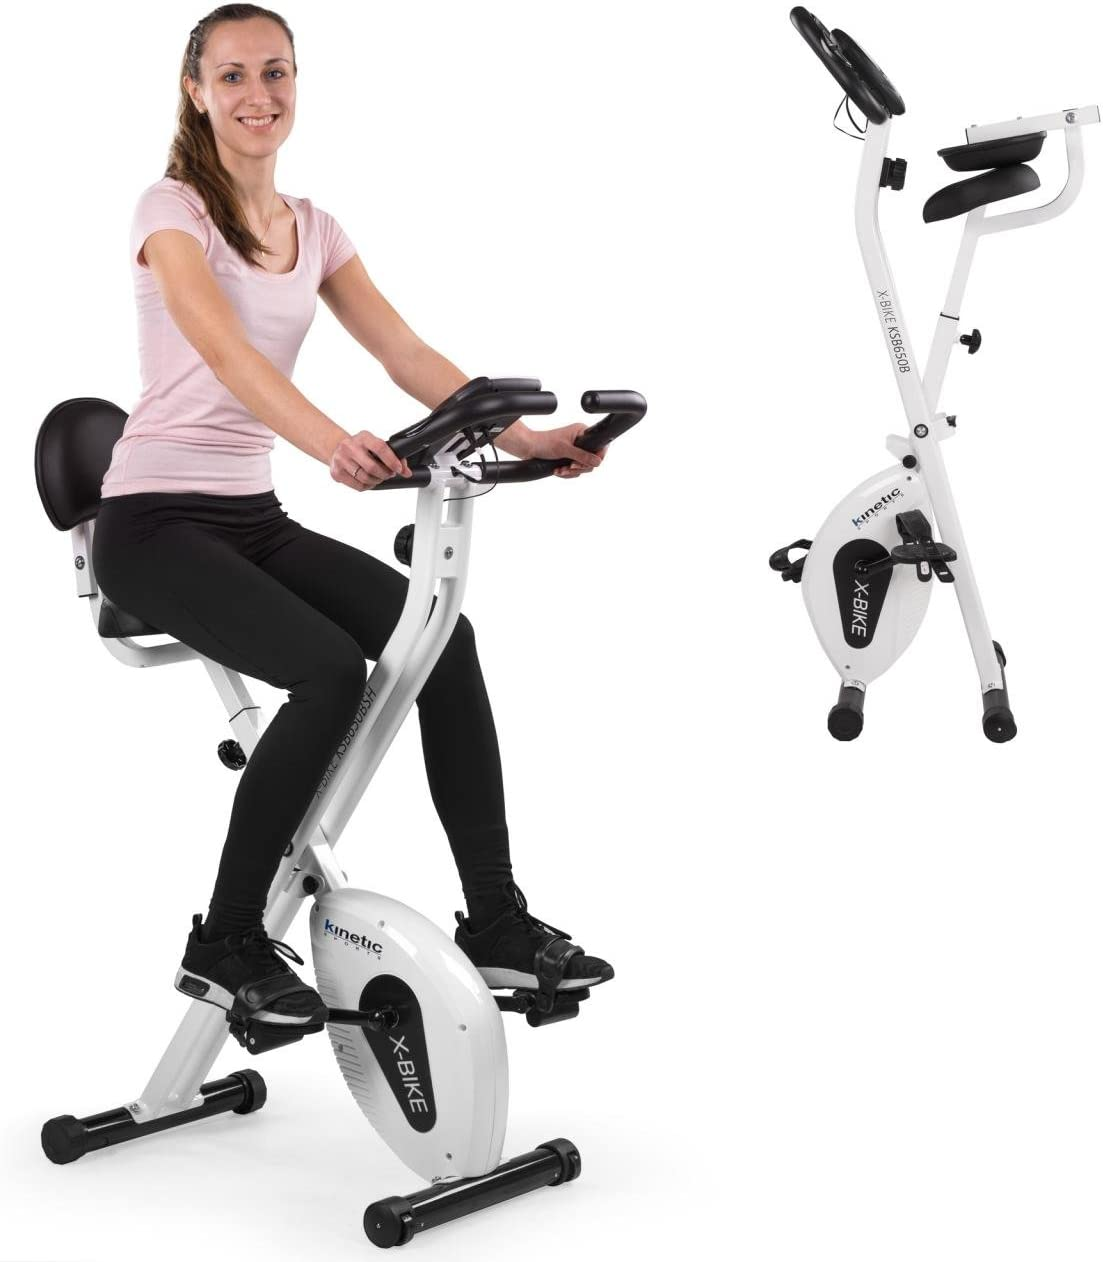 Kinetic Sports Indoor F de Bike Fitness Bicicleta Estática ...